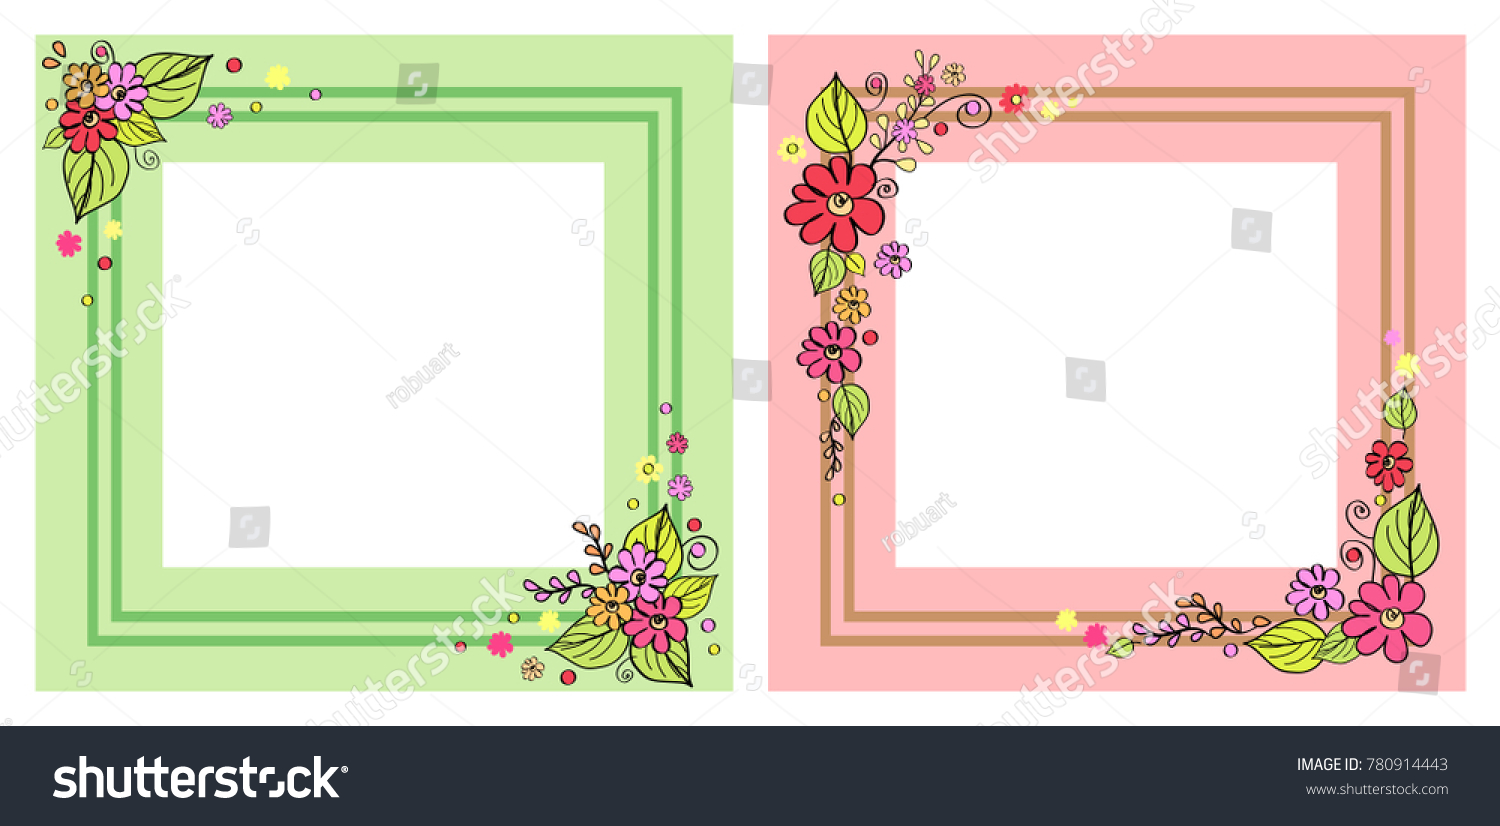 Set photo frames pink green colors stock vector 780914443 set of photo frames in pink and green colors with decorative floral elements in corners jeuxipadfo Images